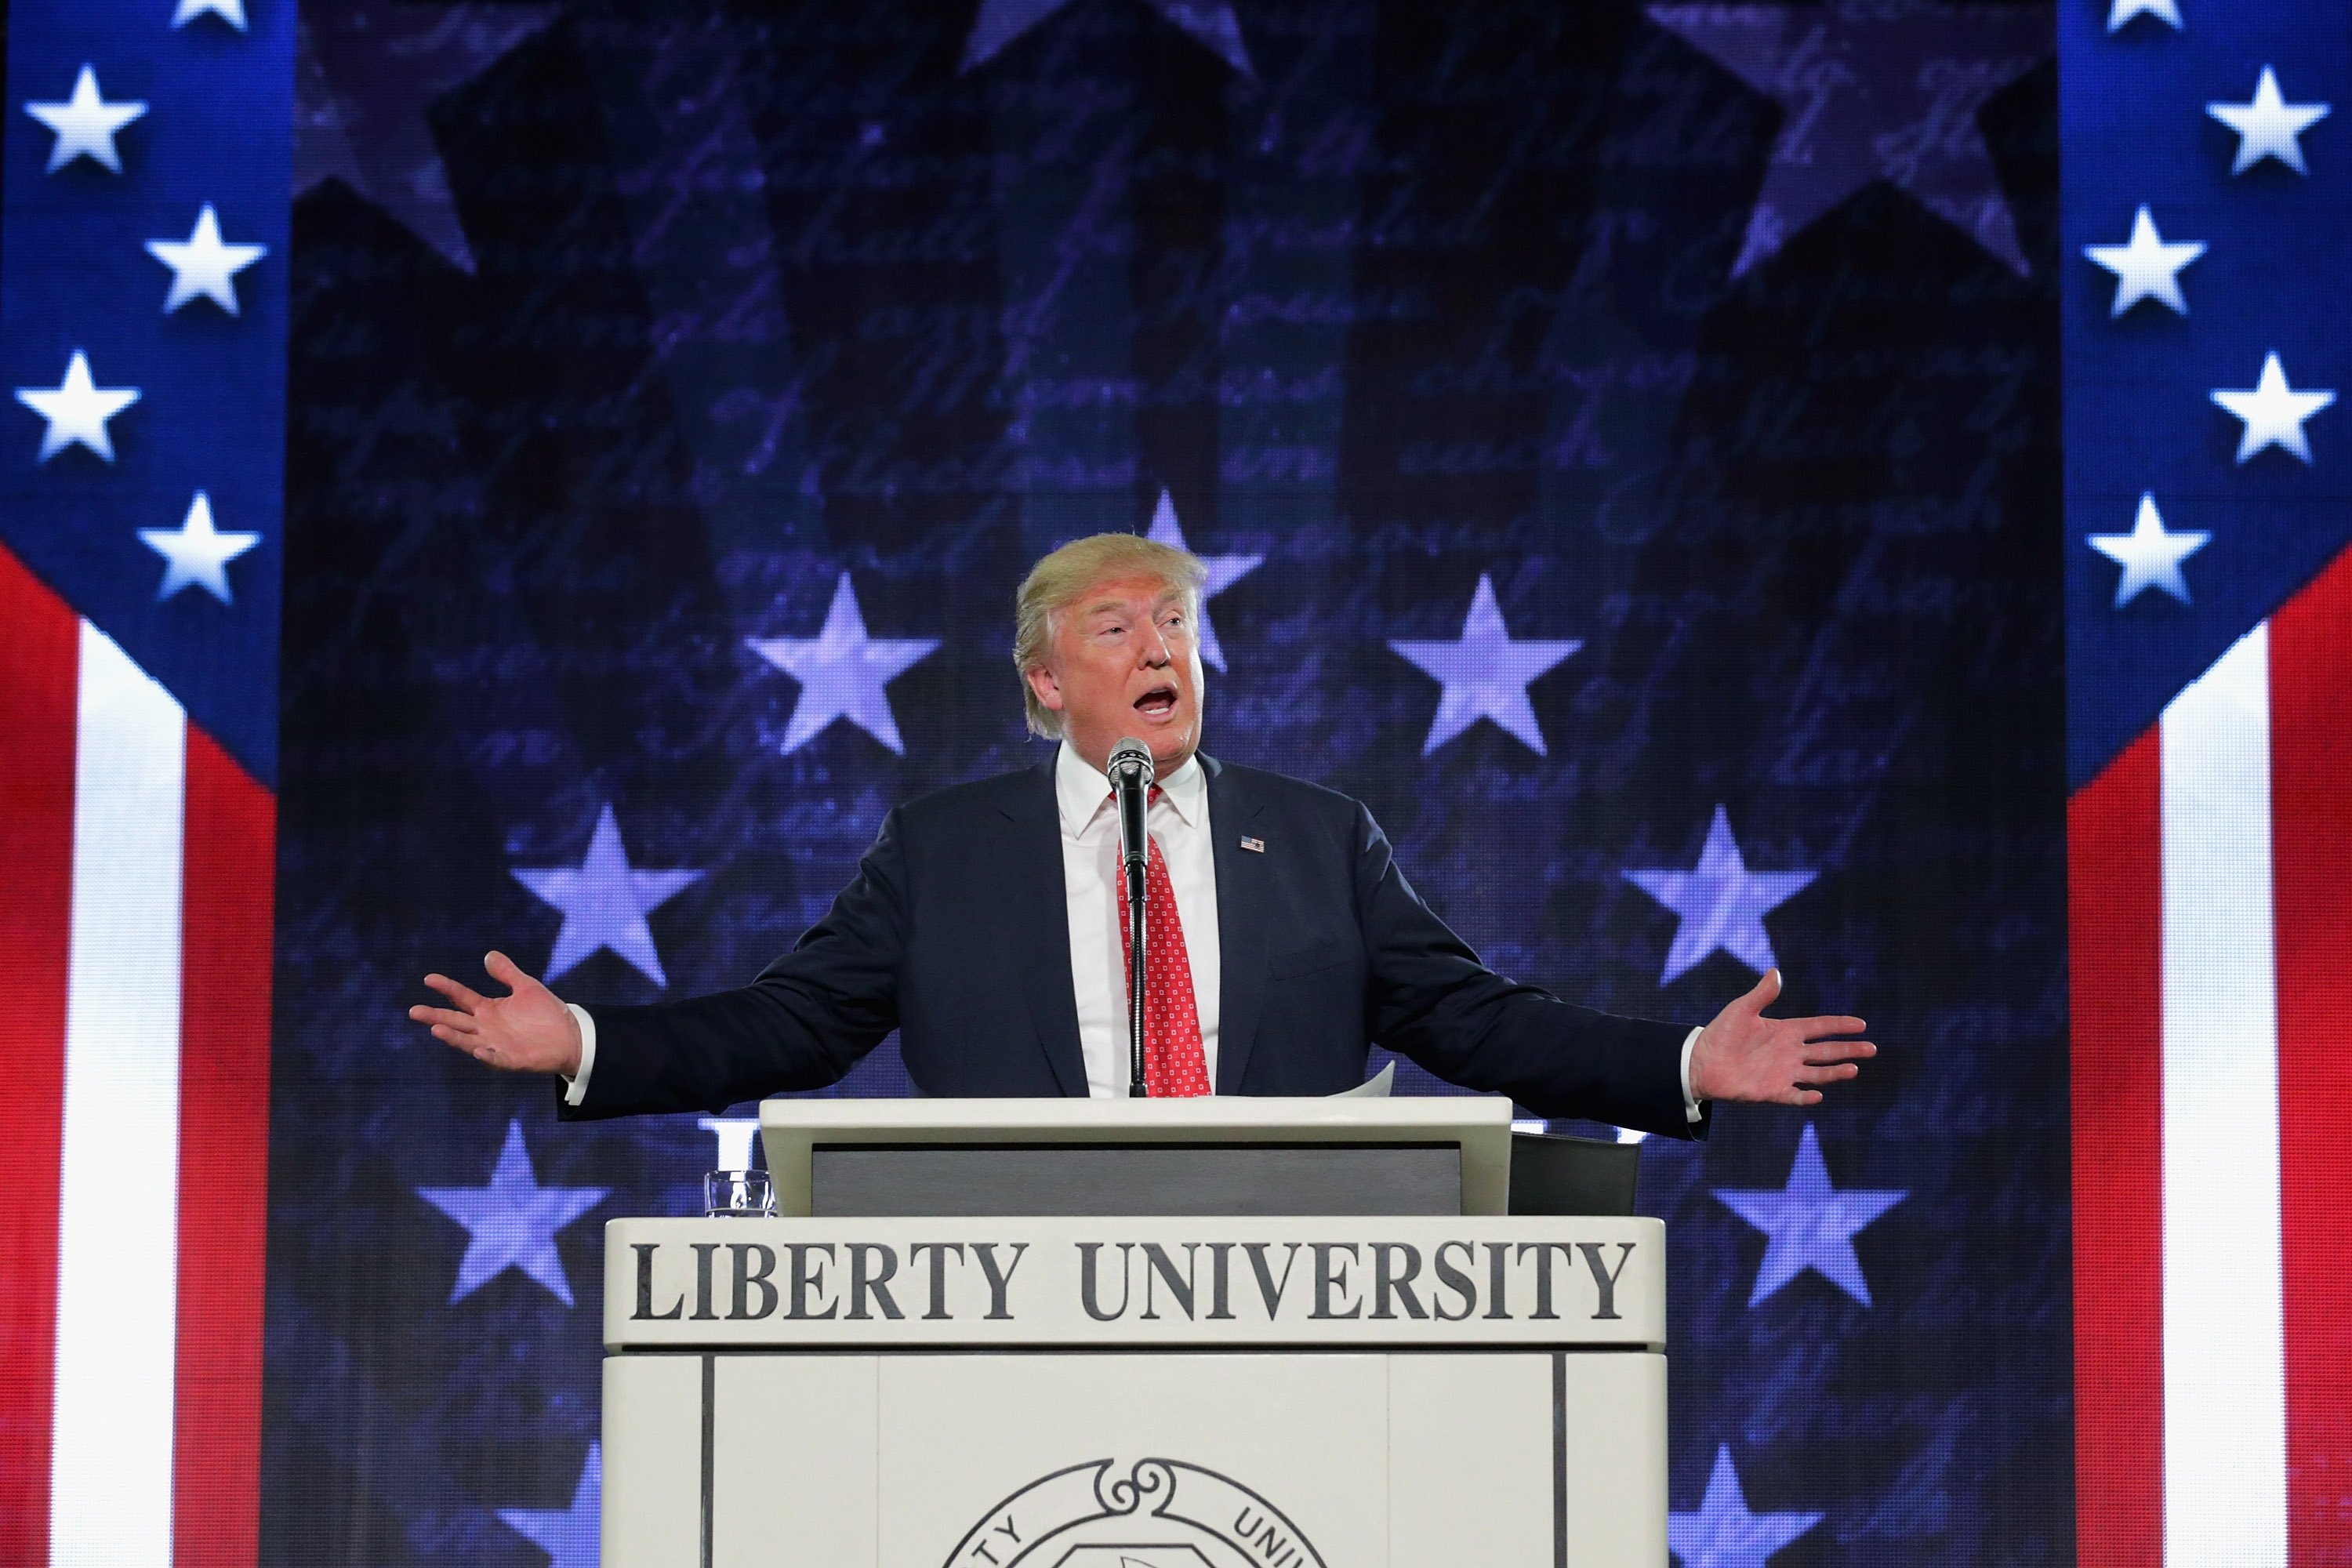 Republican presidential candidate Donald Trump delivers the convocation at the Vines Center on the campus of Liberty University on Jan. 18, 2016 in Lynchburg, Virginia.